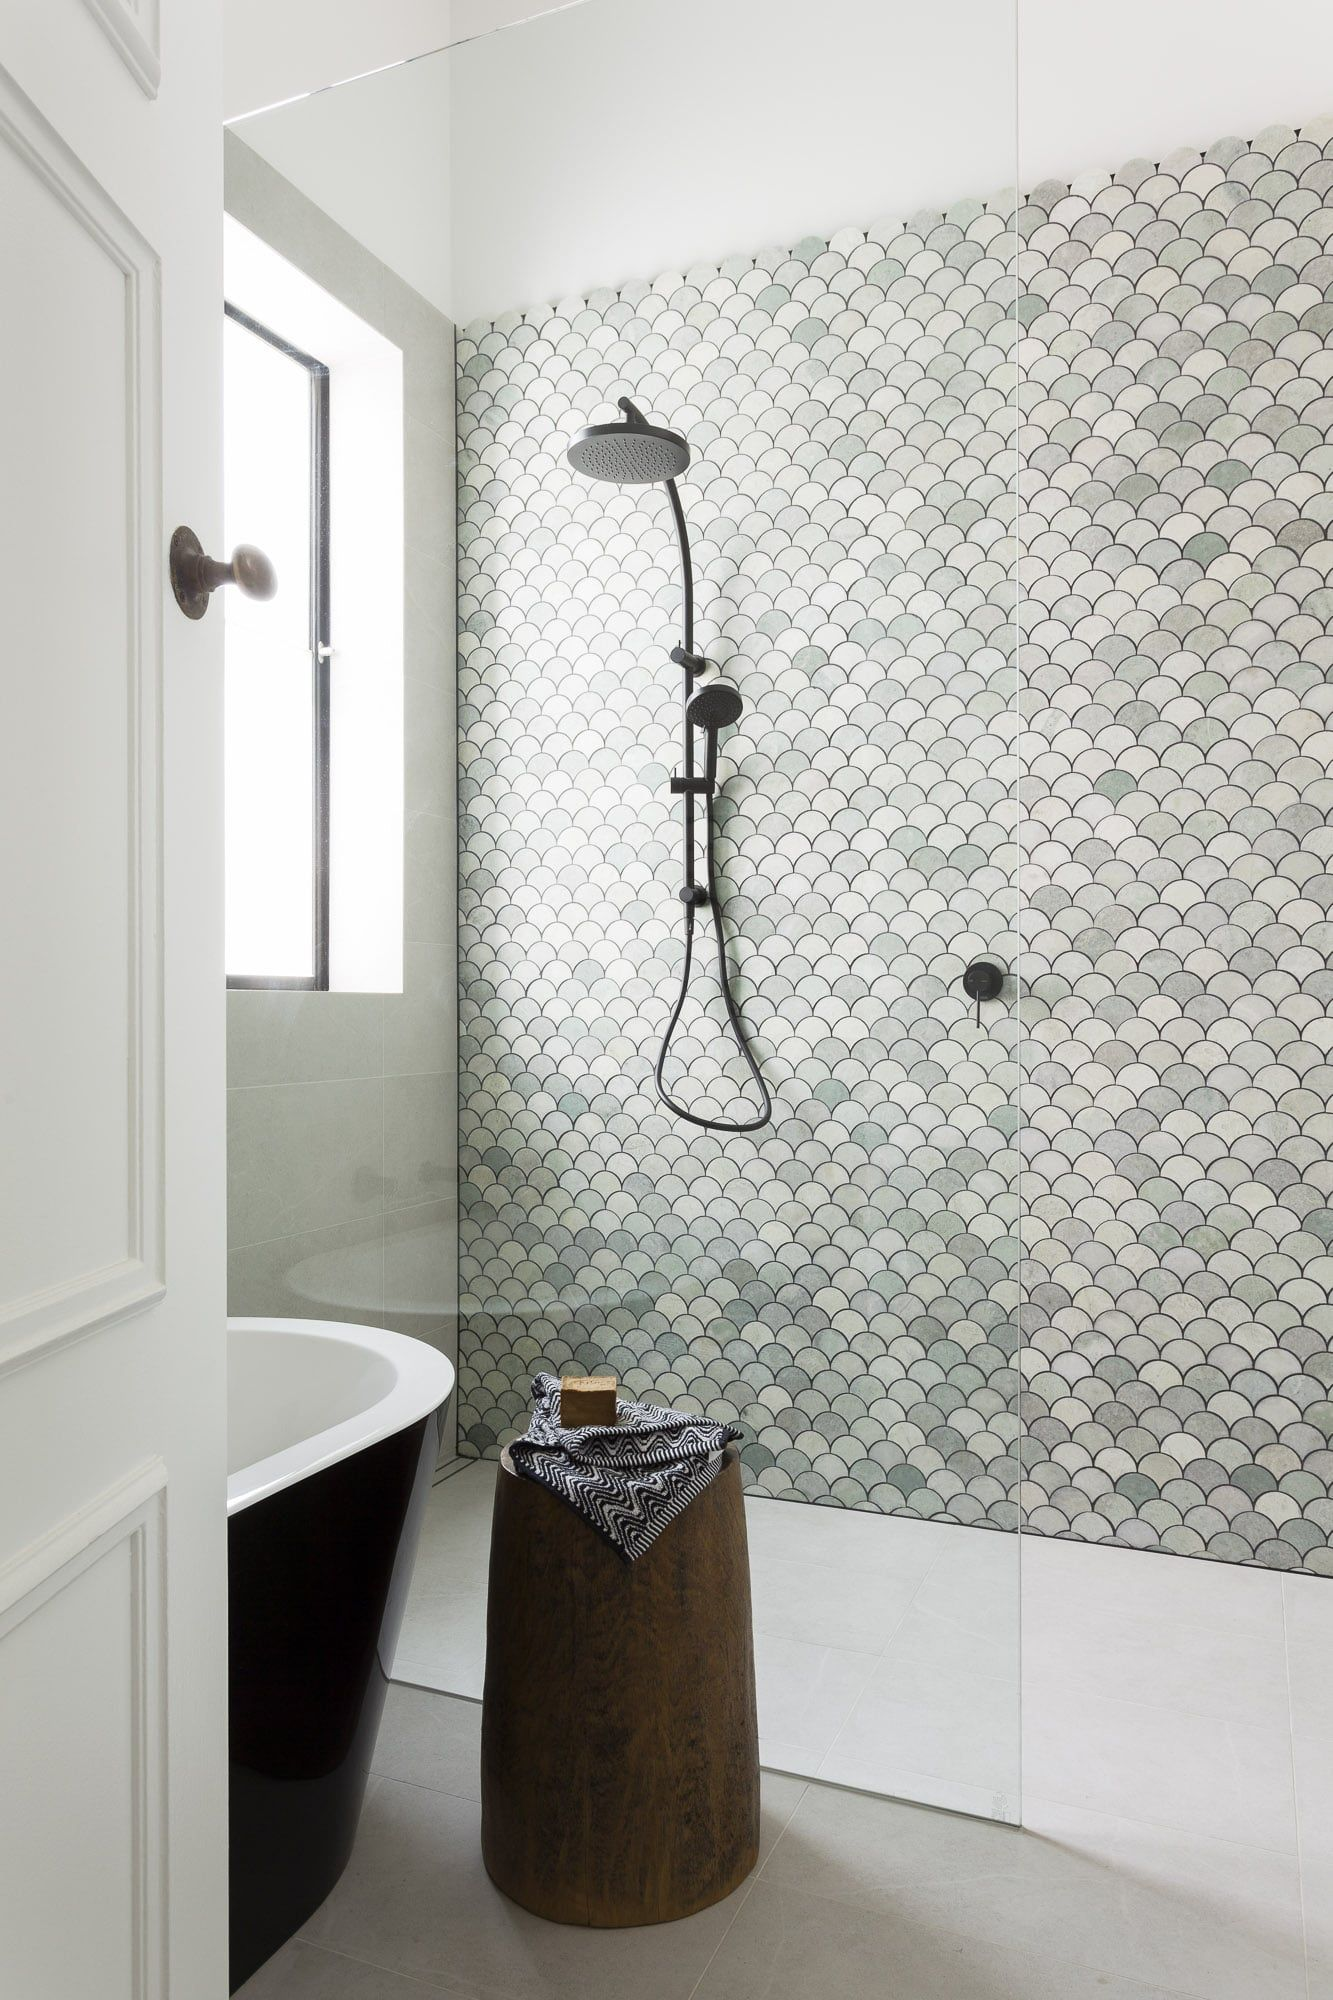 Beautiful bathroom makeover marble fan tiles petrina turner check out how a tile statement wall in your bathroom using cement tile natural stone or ceramic tile creates a fresh unique design dailygadgetfo Images